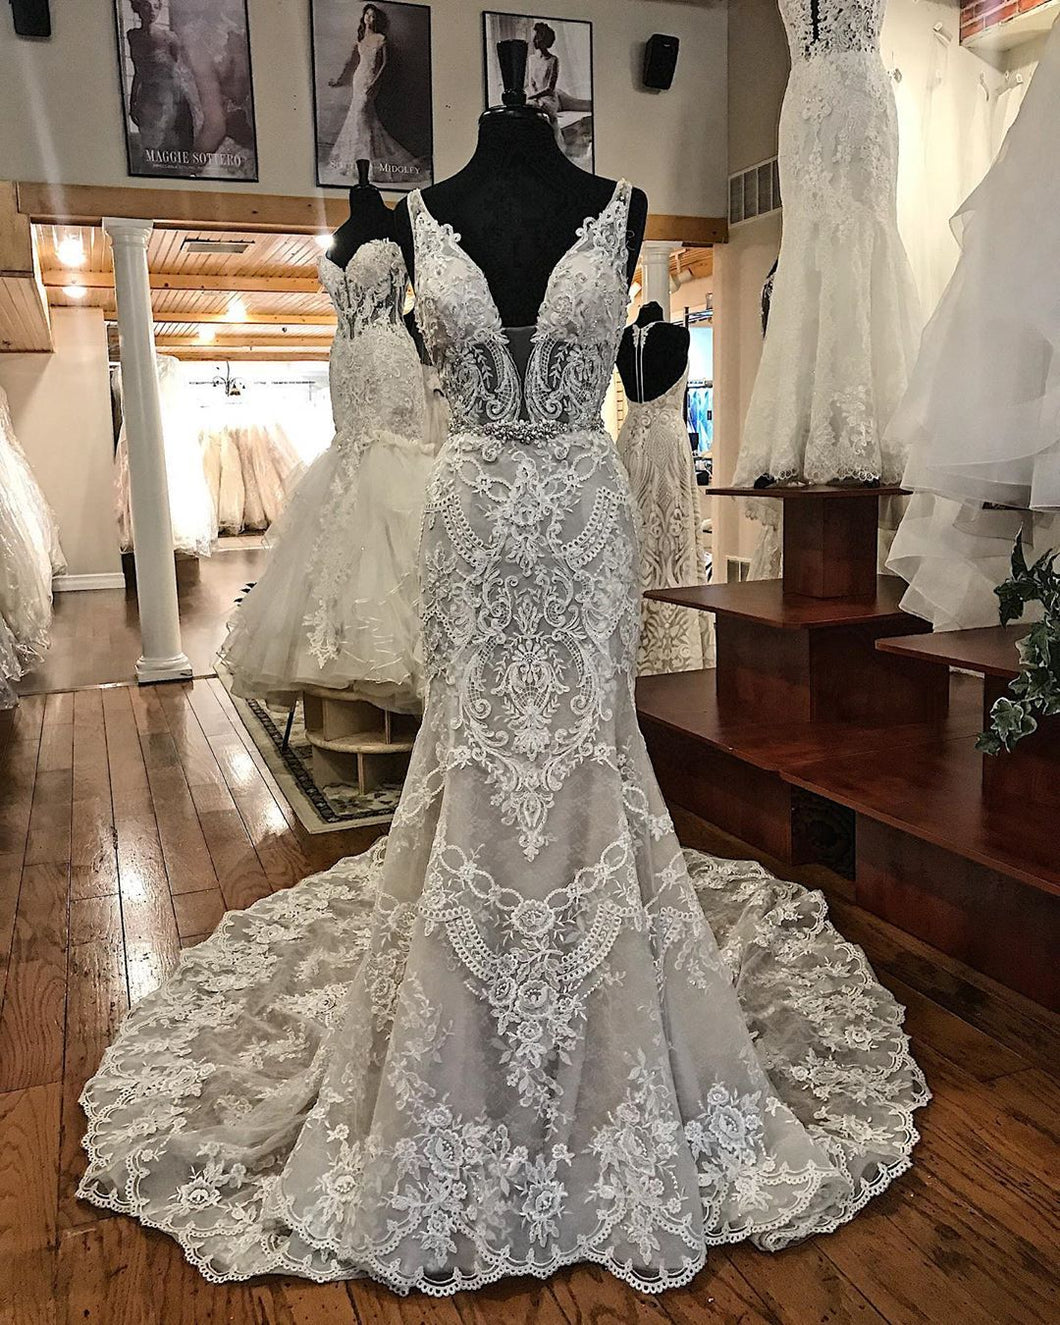 Chic Lace V-Neck Appliuqes Mermaid Wedding Dress Bridal Gowns JKD2004|Annapromdress